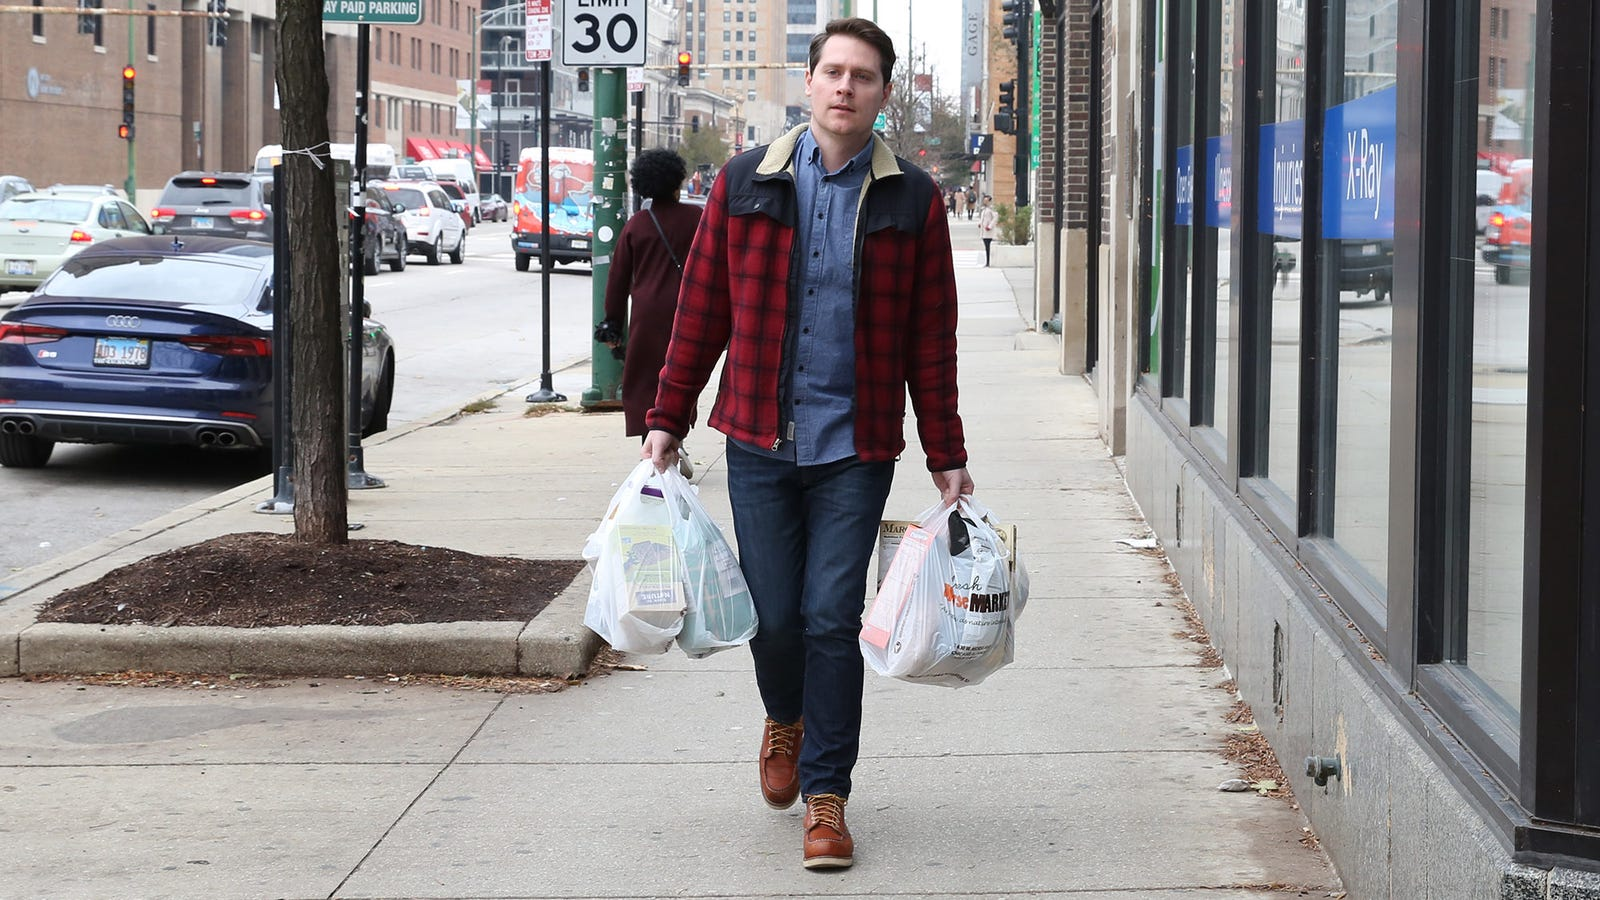 Adrenaline Supply Intended For Lifting Car Off Loved One Called Upon To Carry 4 Grocery Bags At Once